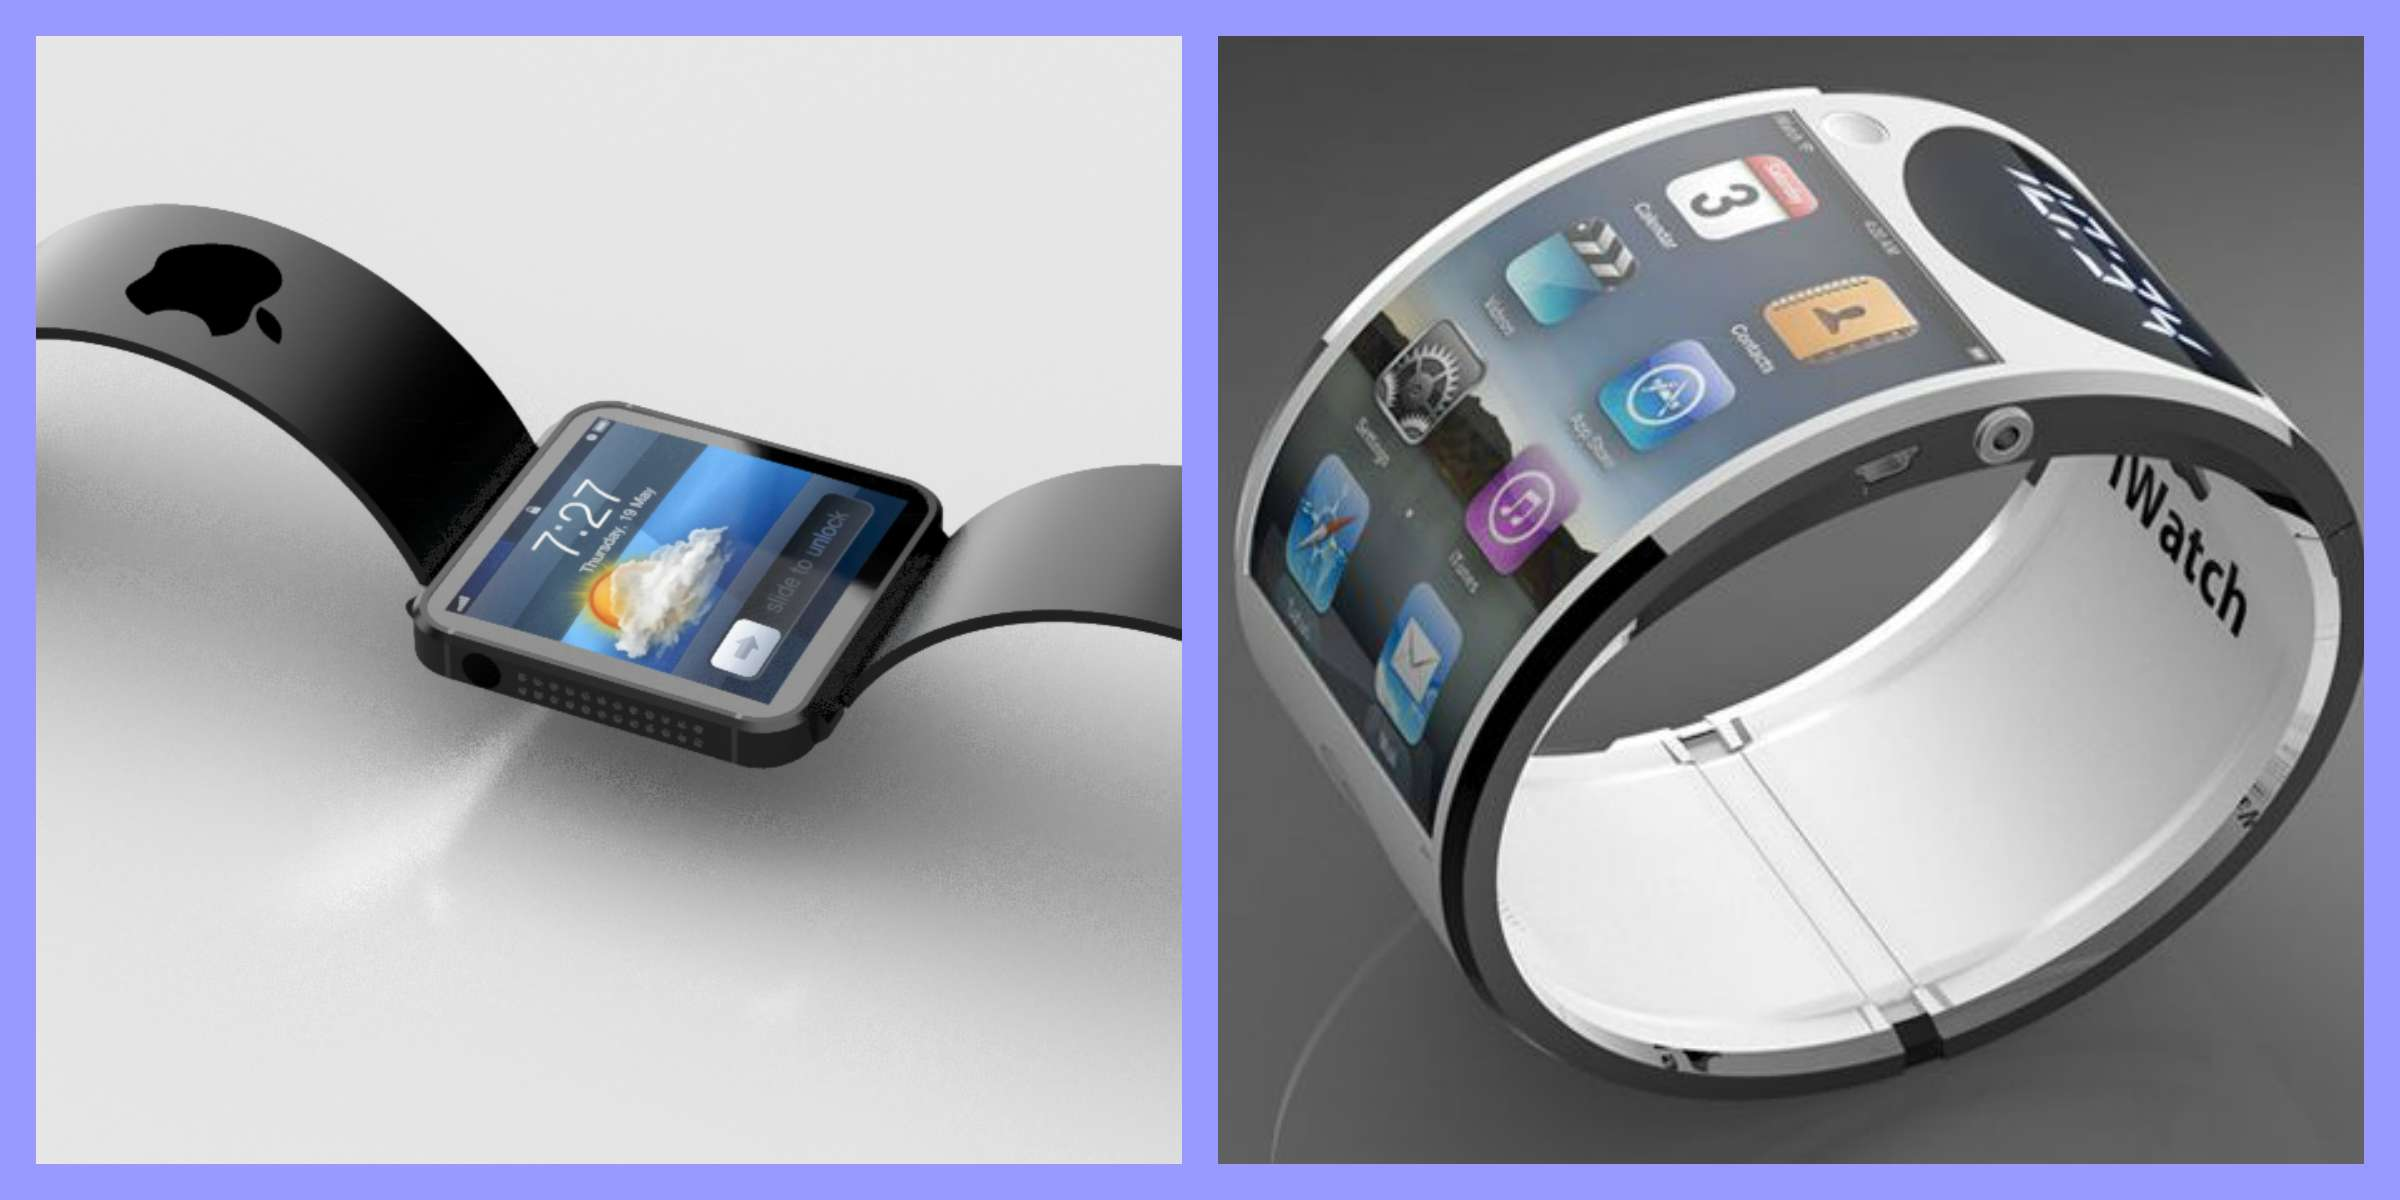 ces i promoted apple at made news already watch phone displayed by chinese clone watches company and being